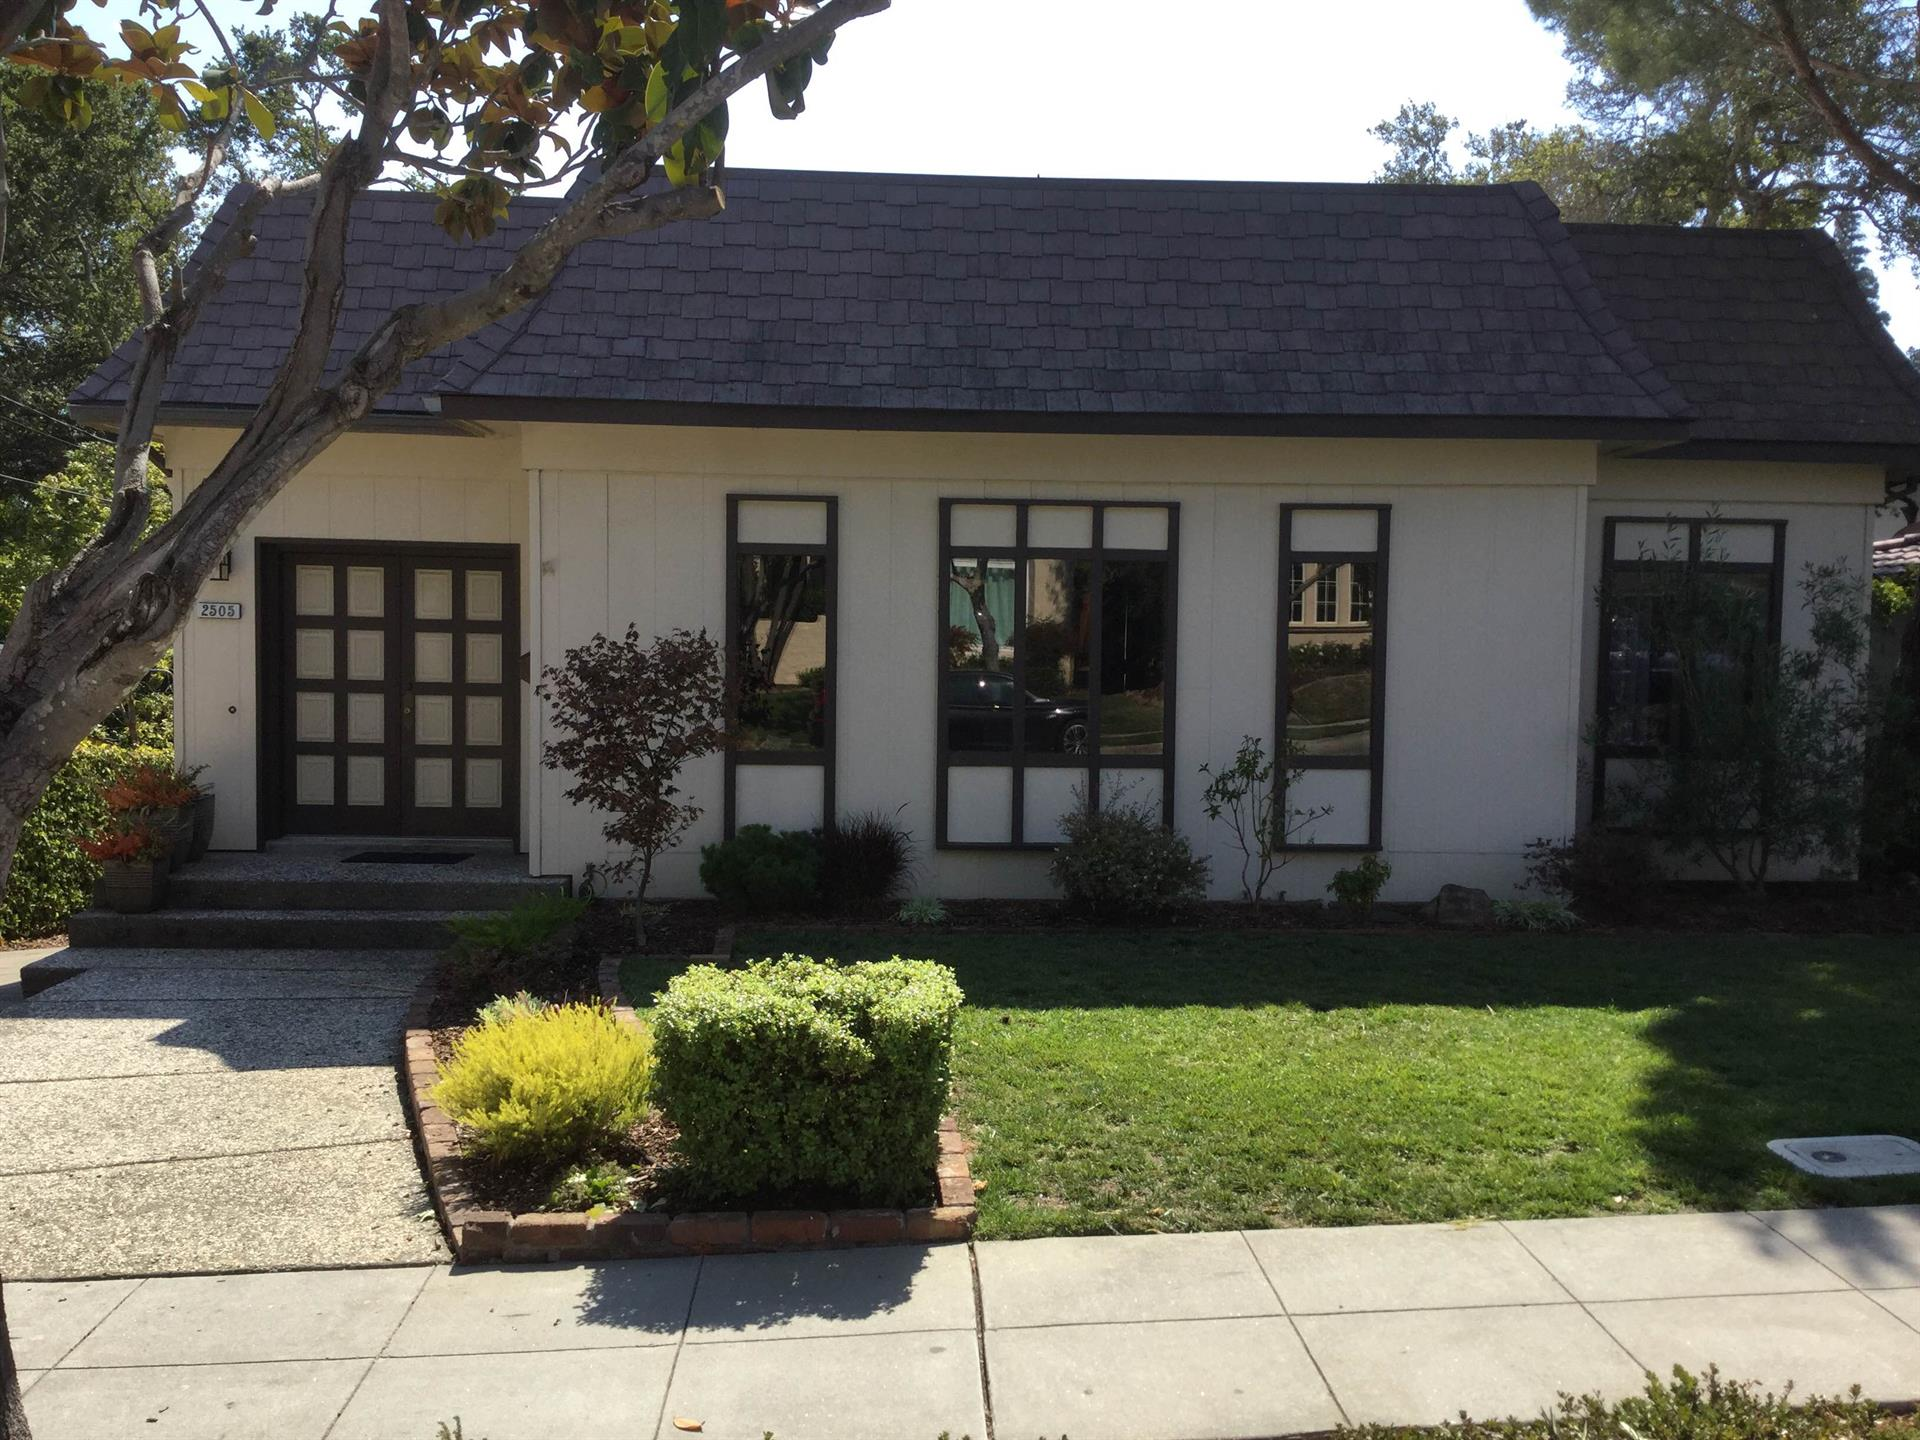 Additional photo for property listing at 2505 Easton Dr 2505 Easton Dr Burlingame, Kalifornien 94010 Vereinigte Staaten